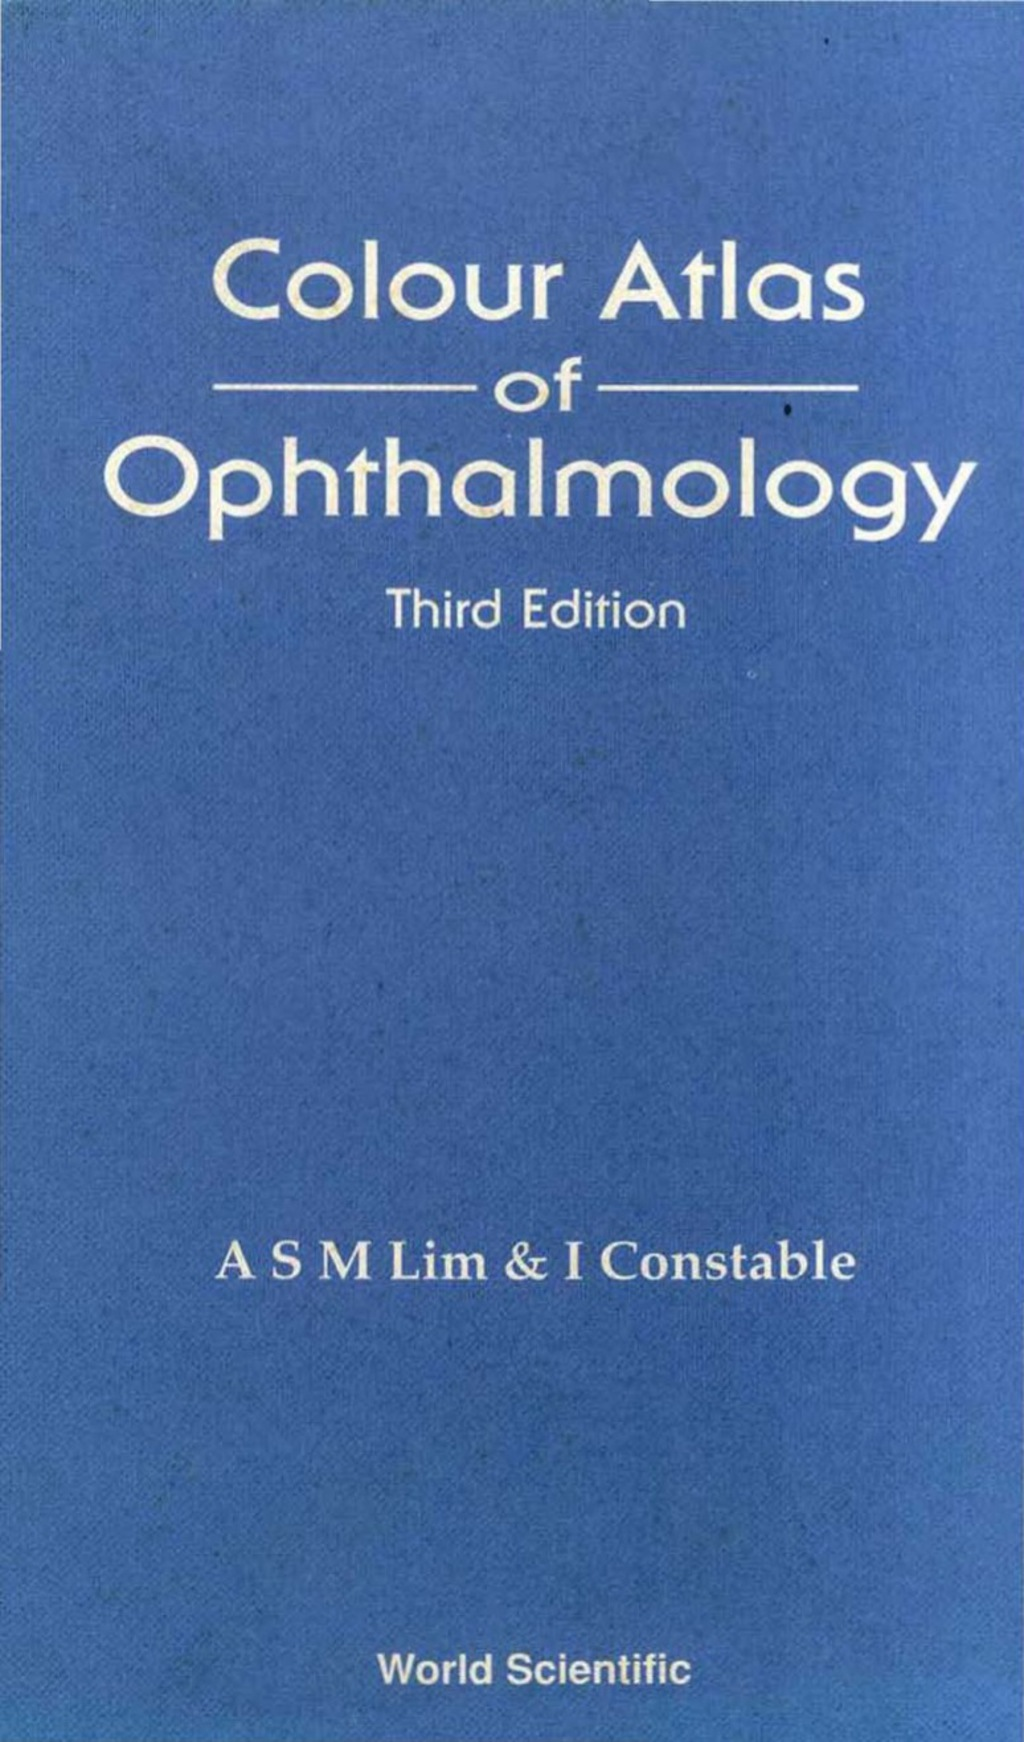 Colour Atlas of Ophthalmology (ebook) eBooks